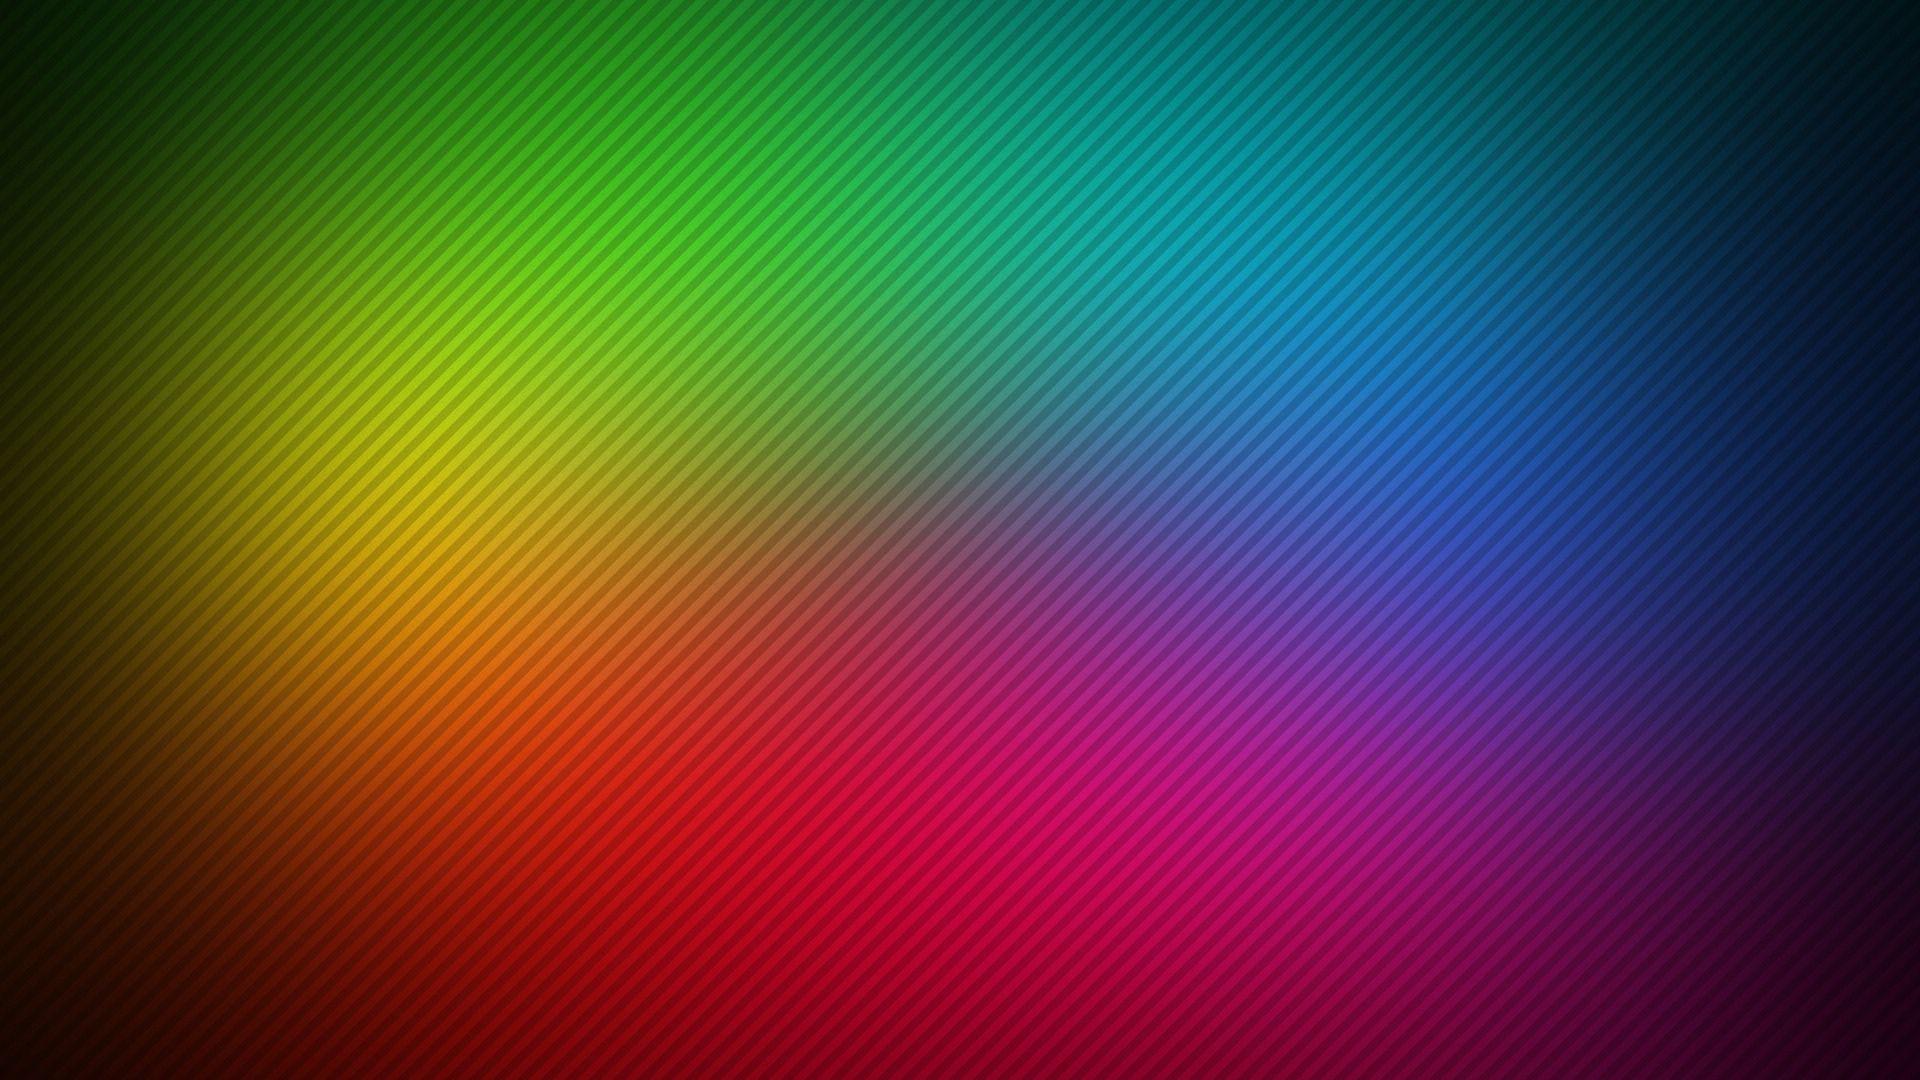 Royalty Free Background Image computer wallpaper